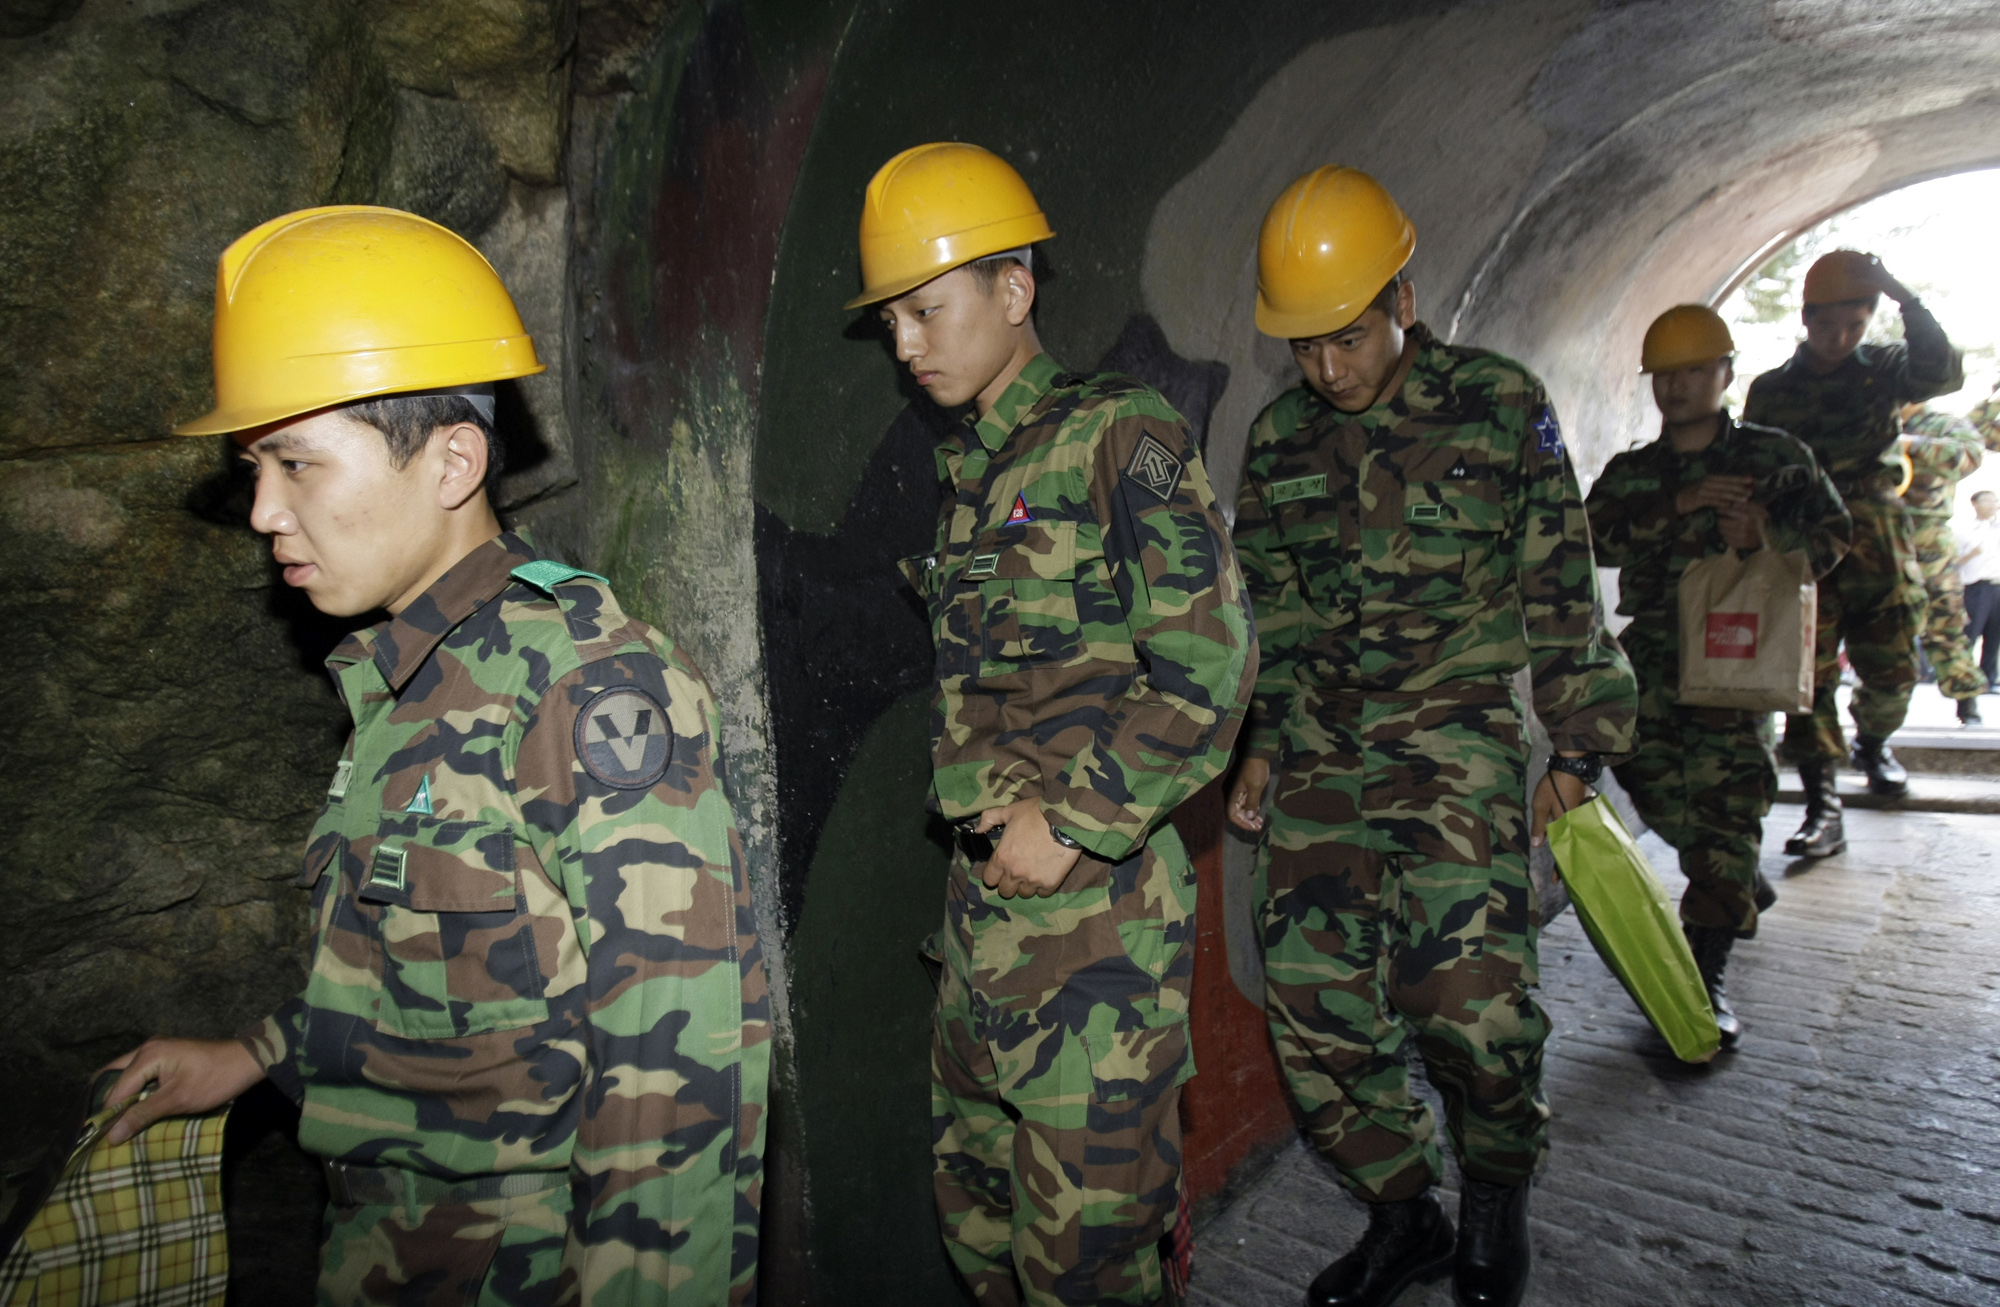 South Korean soldiers visit the 2nd Underground Tunnel, found in 1975 near the city of Cheorwon, on Sept. 18, 2008.